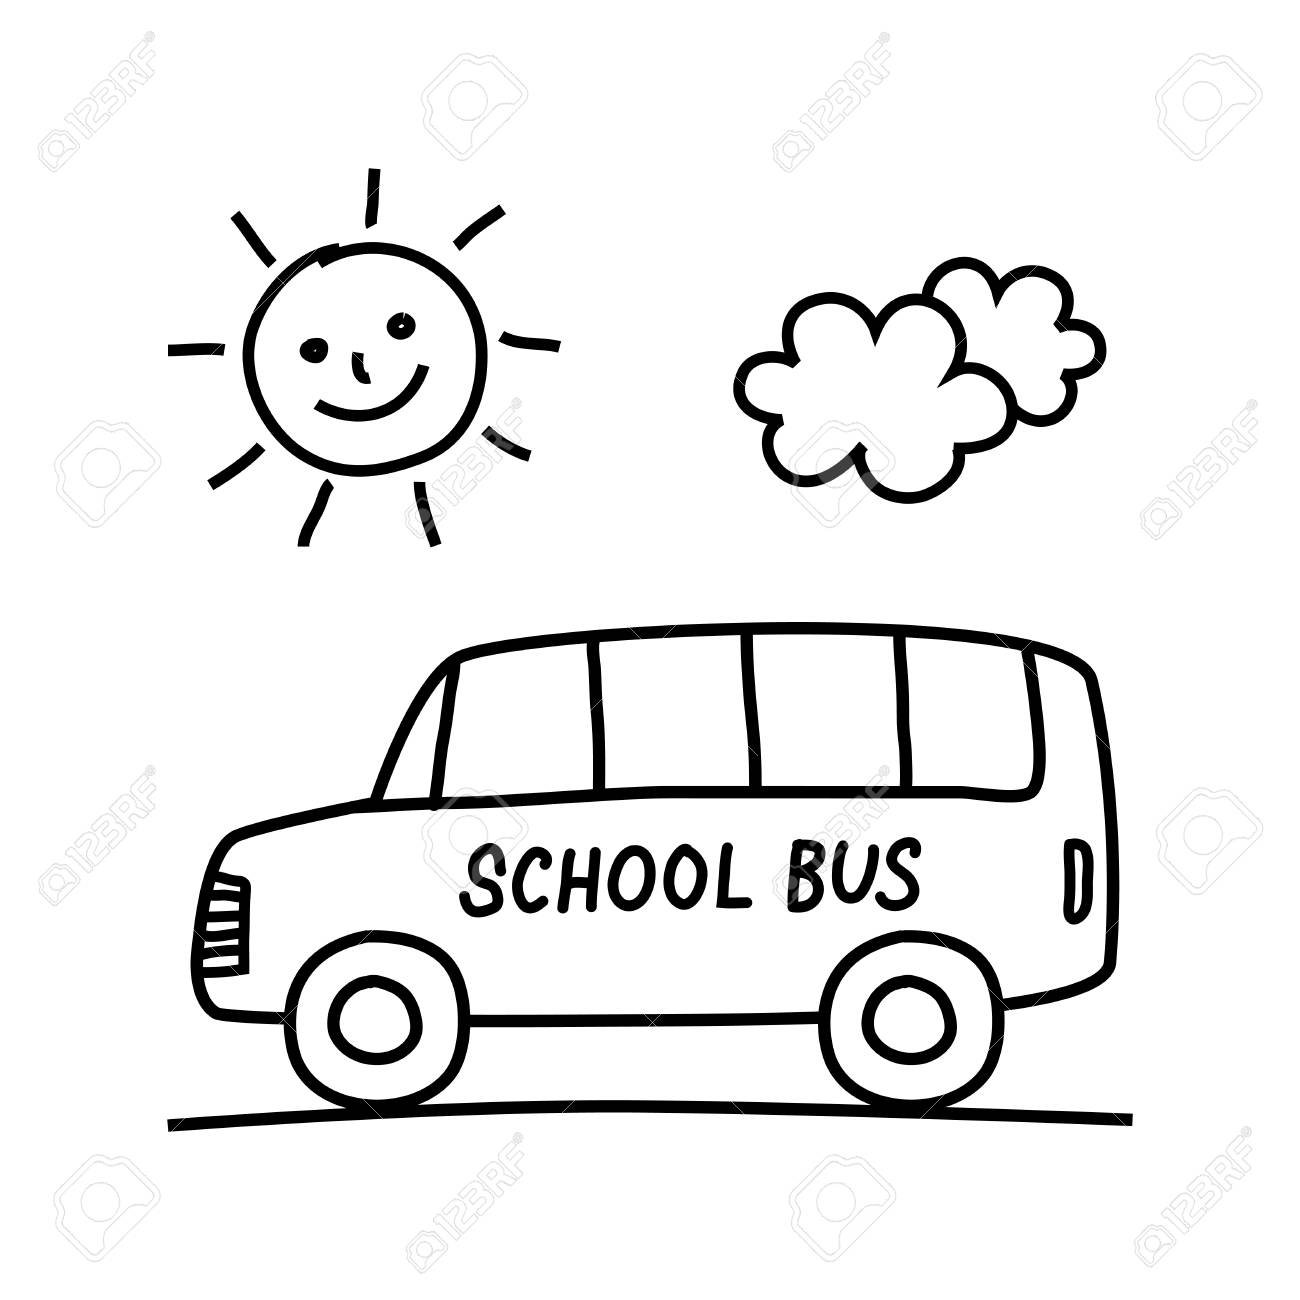 School Bus Drawing On White Background Royalty Free Cliparts